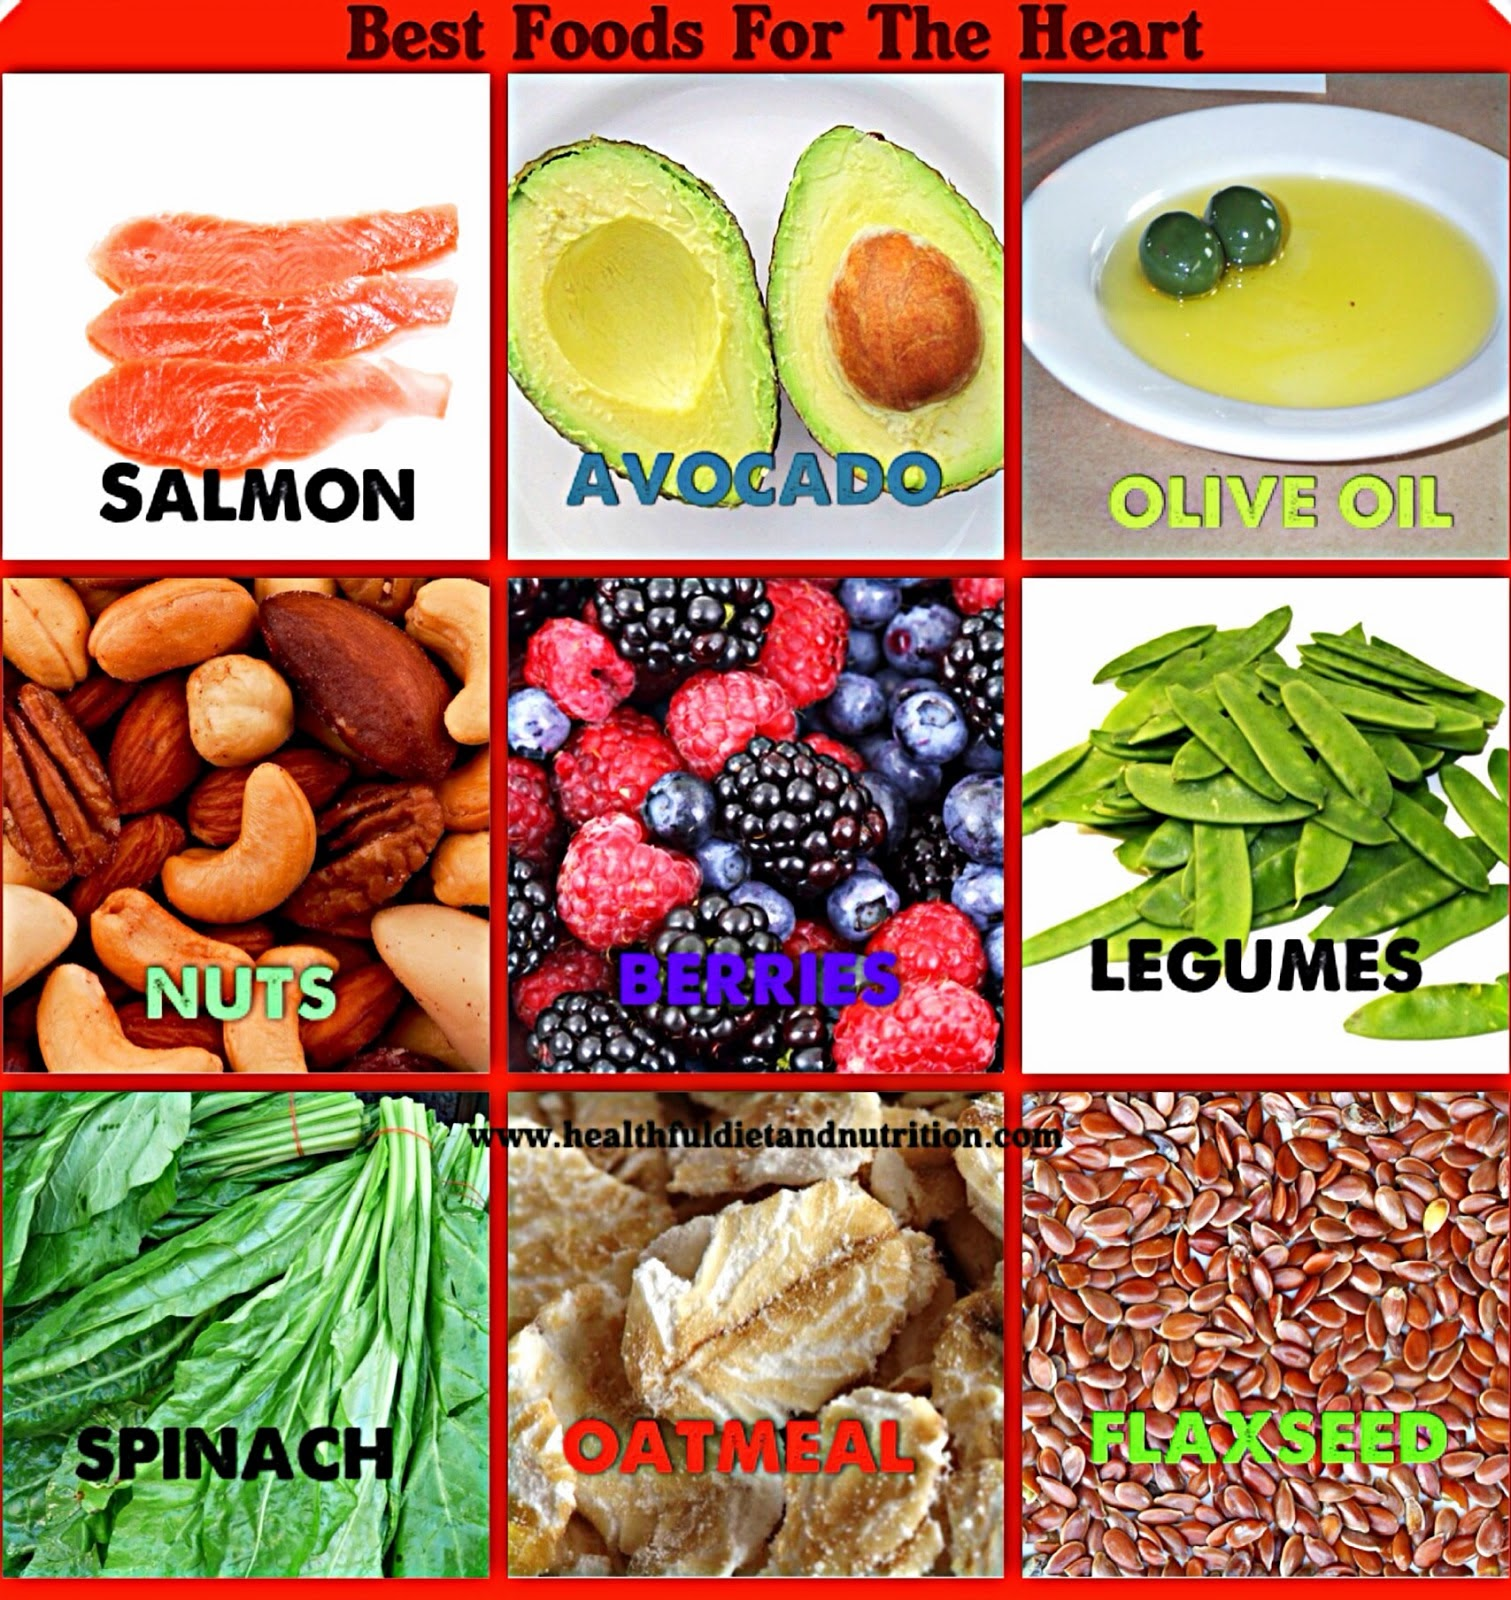 Best Foods For The Heart